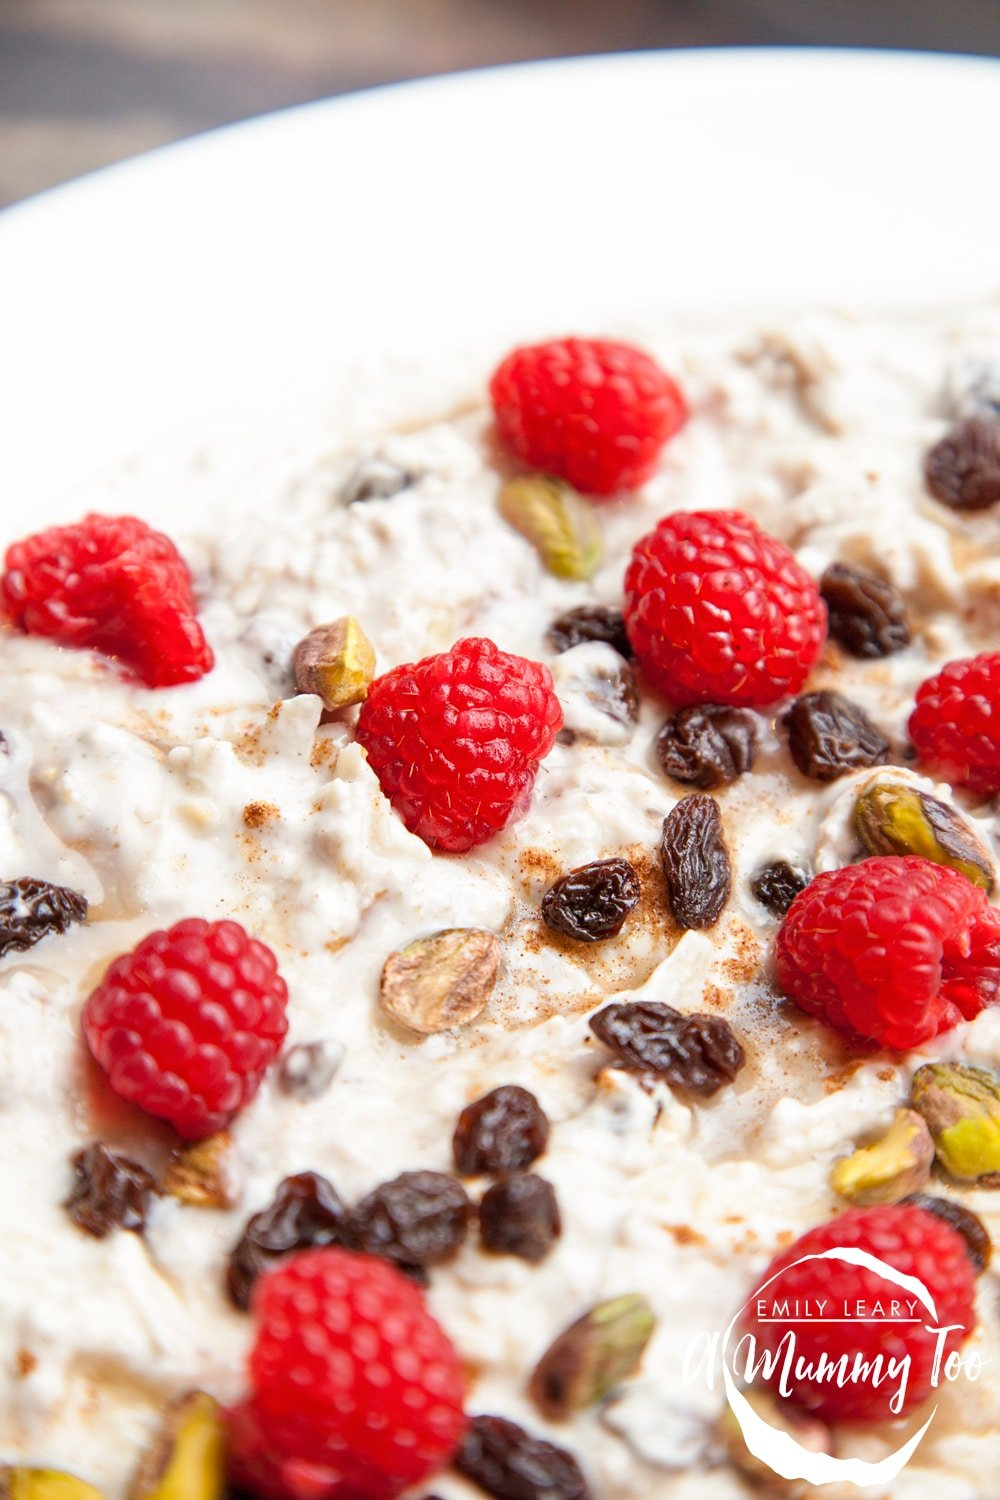 A nourishing overnight breakfast bircher, rich with calcium, fruit and nuts. It's creamy, refreshing and utterly delicious.